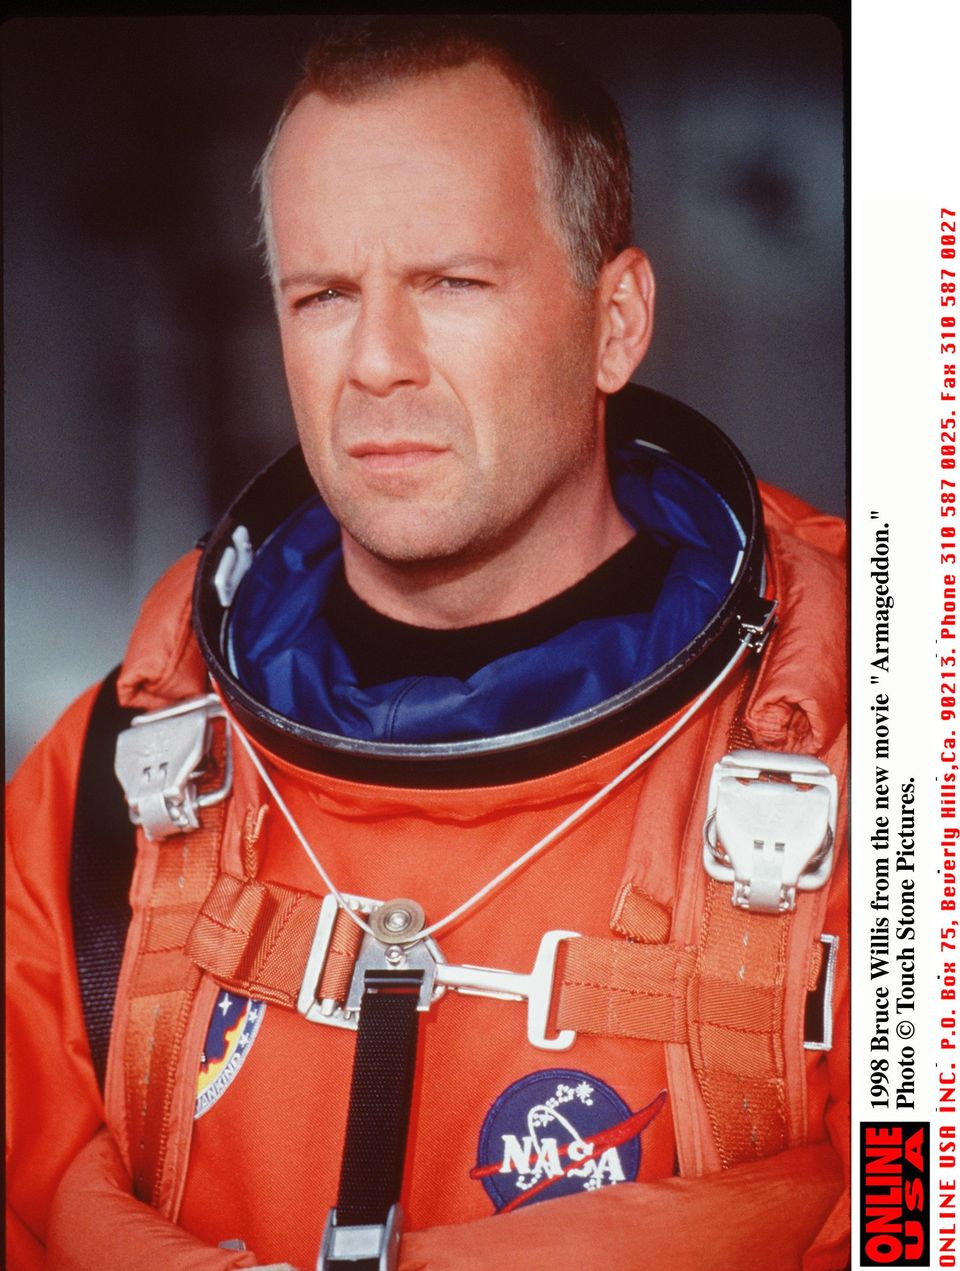 """1998 Bruce Willis In """"Armageddon.""""   Source: Getty Images"""